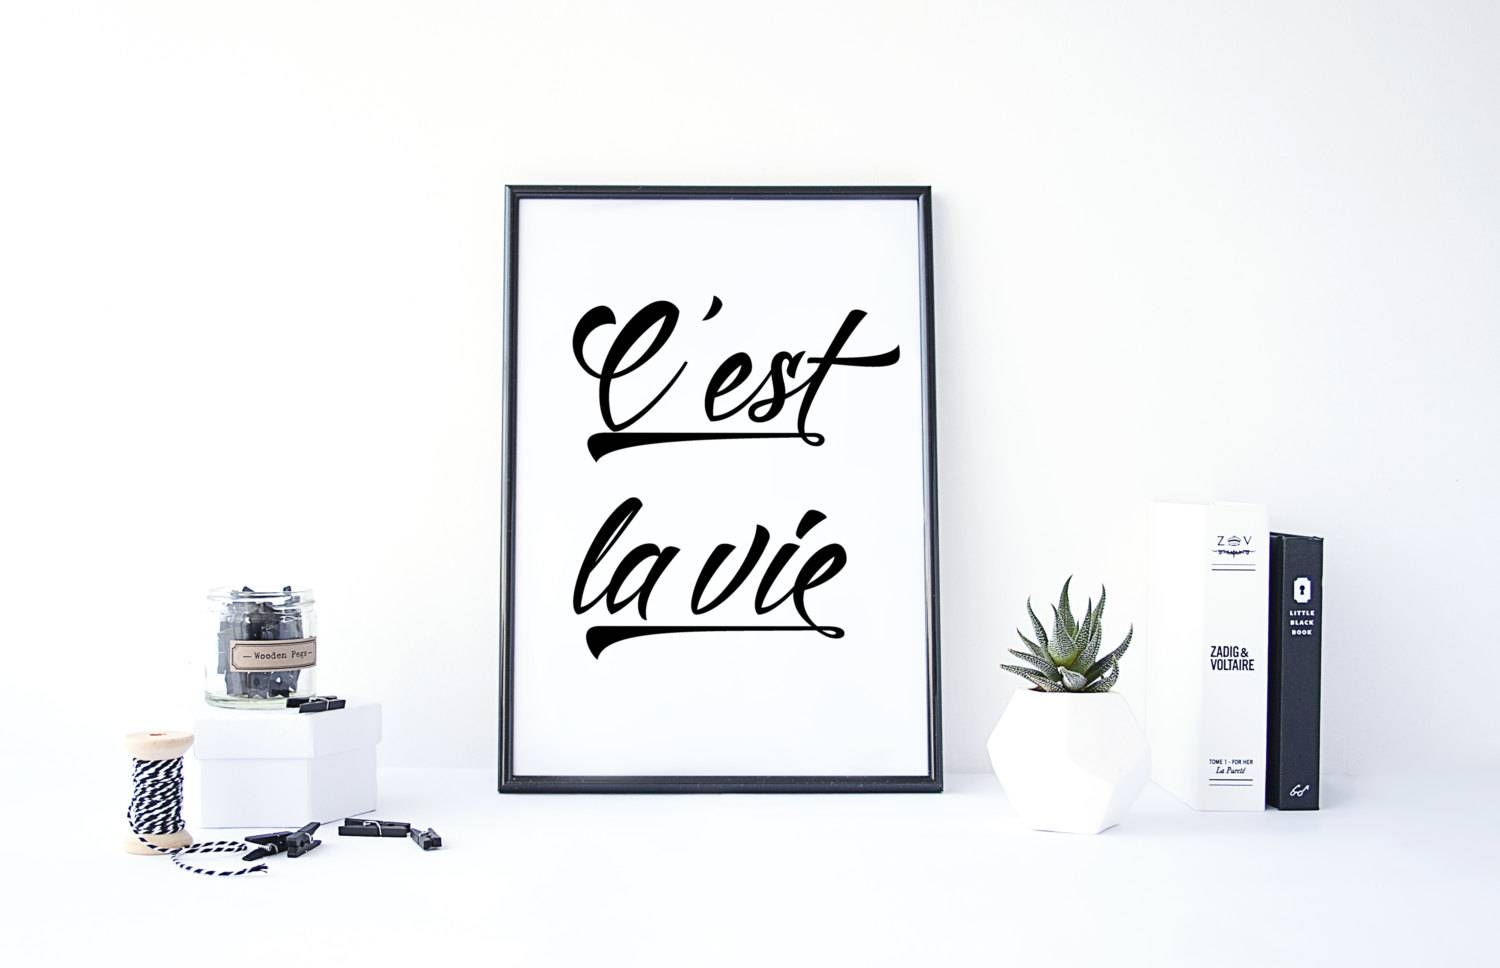 Cest La Vie French Print French Quote French Words Regarding Most Recent Life Is Good Wall Art (View 6 of 30)